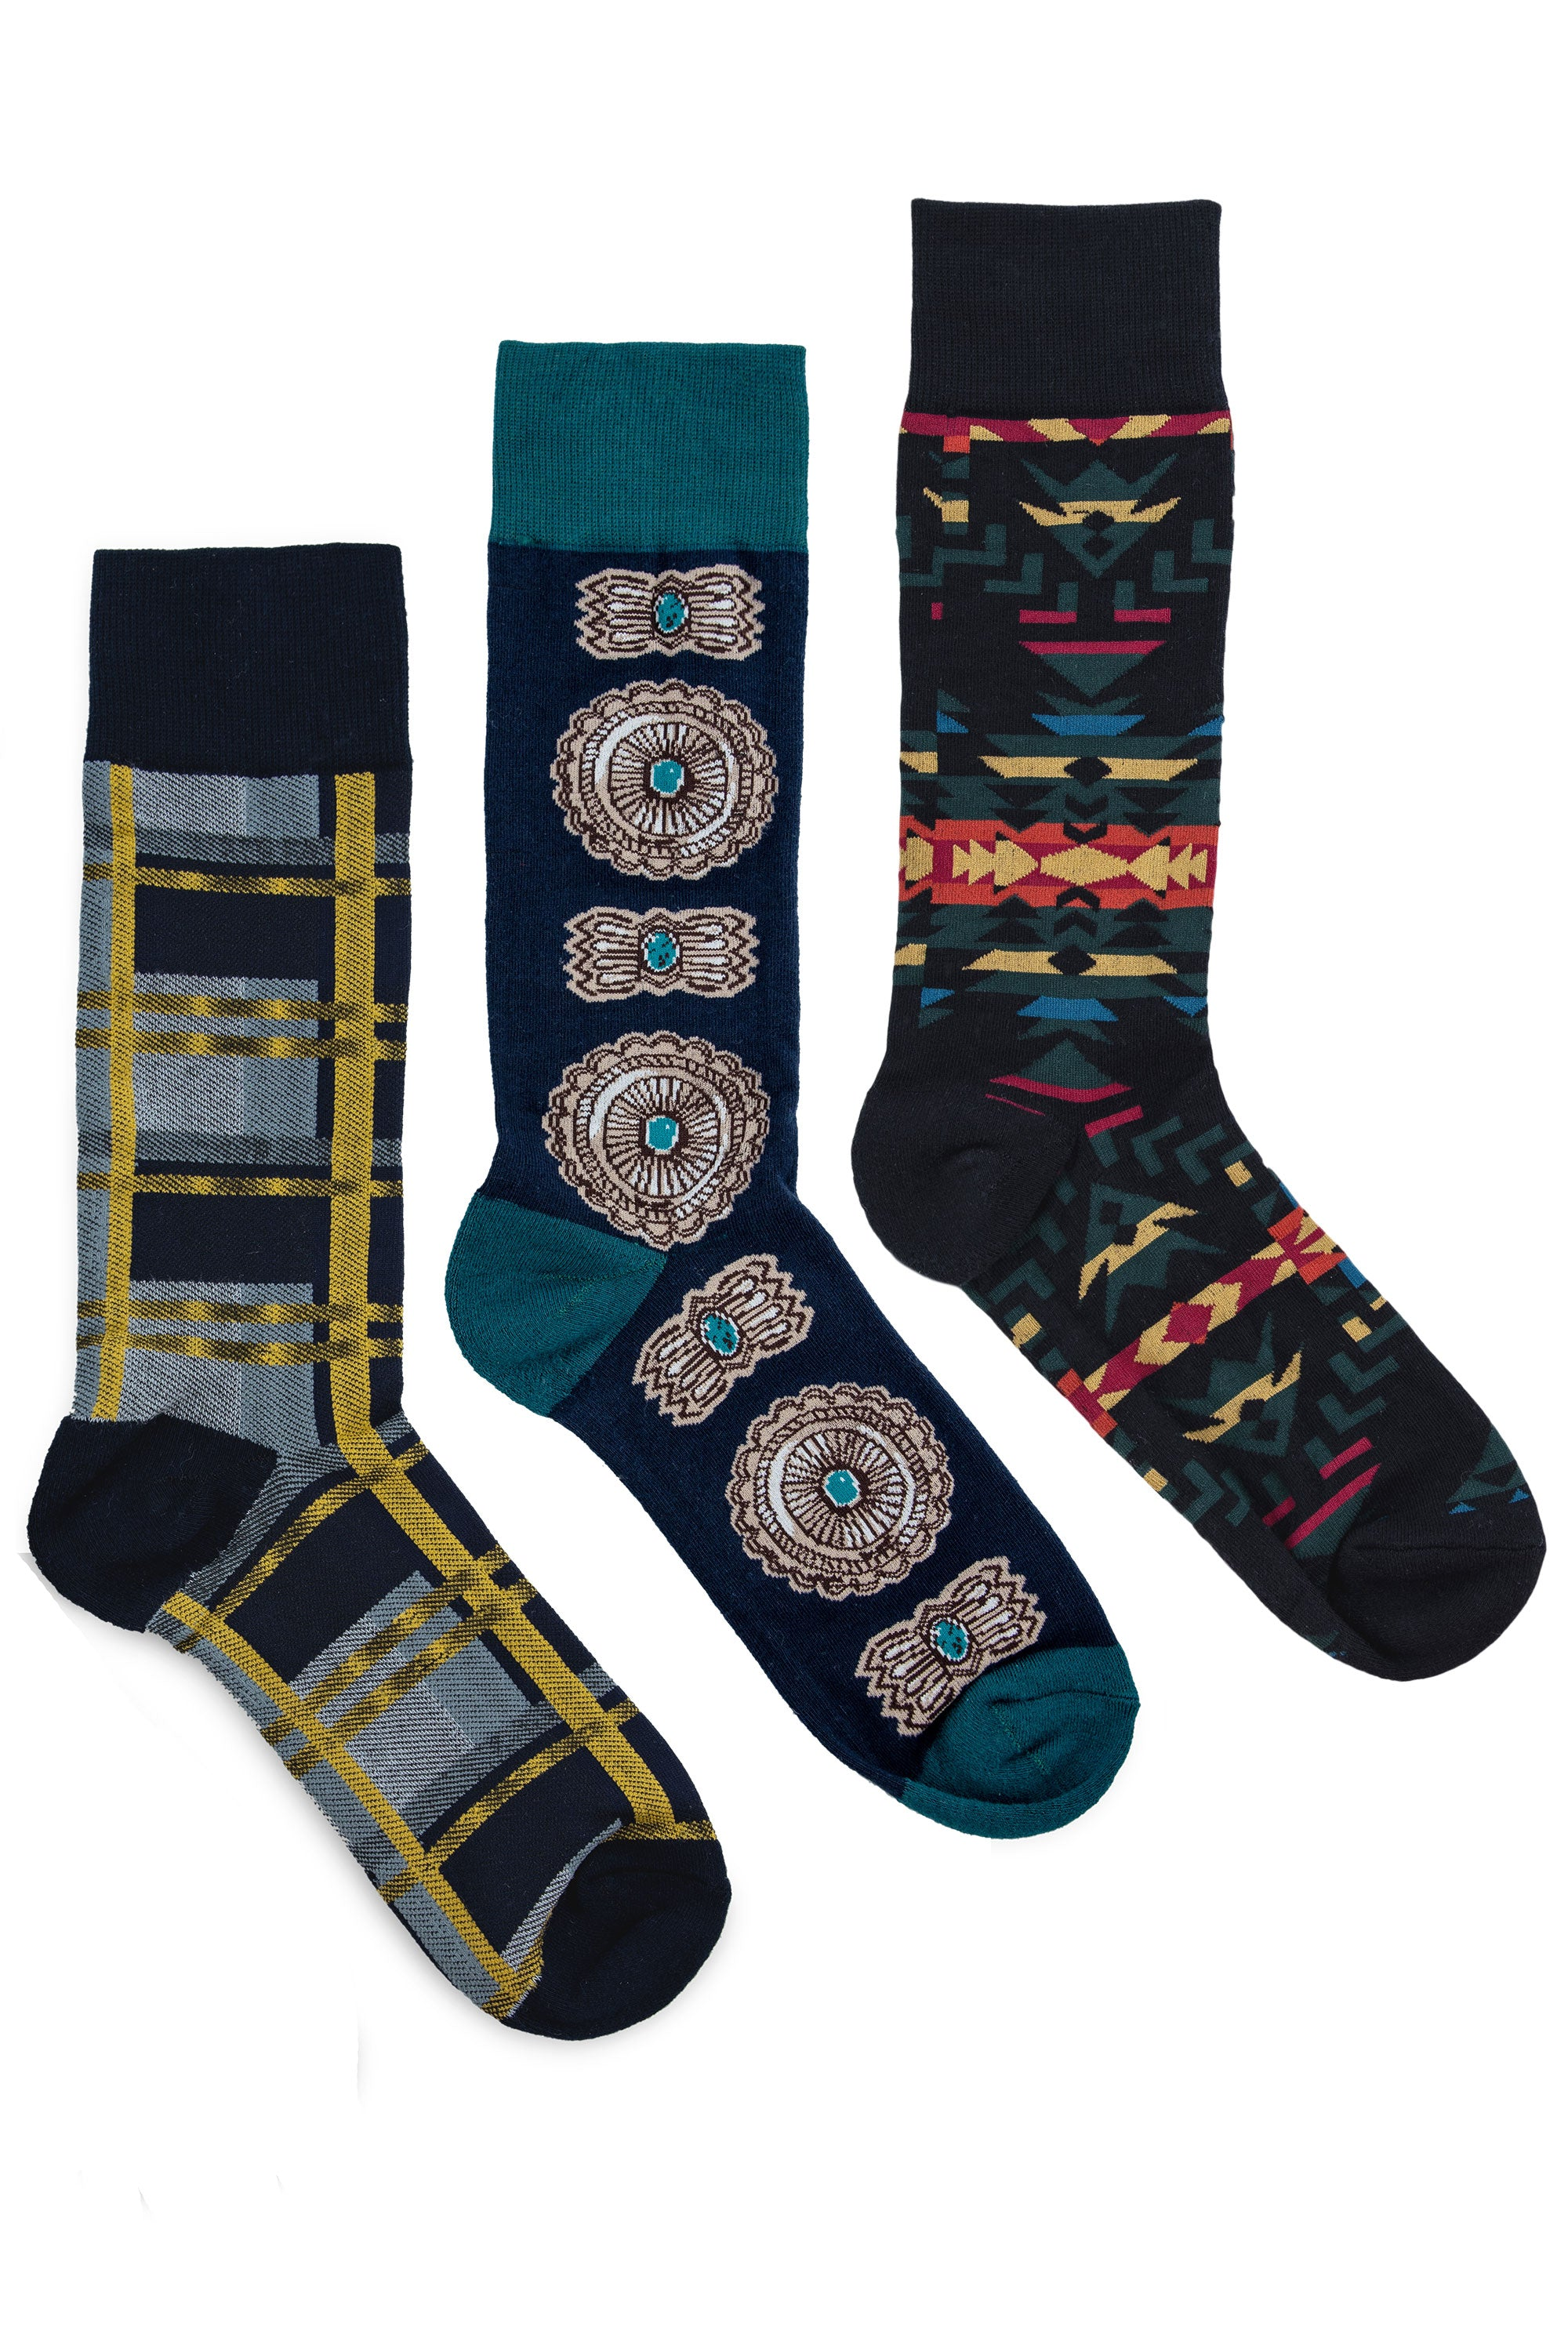 Sock, Taos Pack - 3